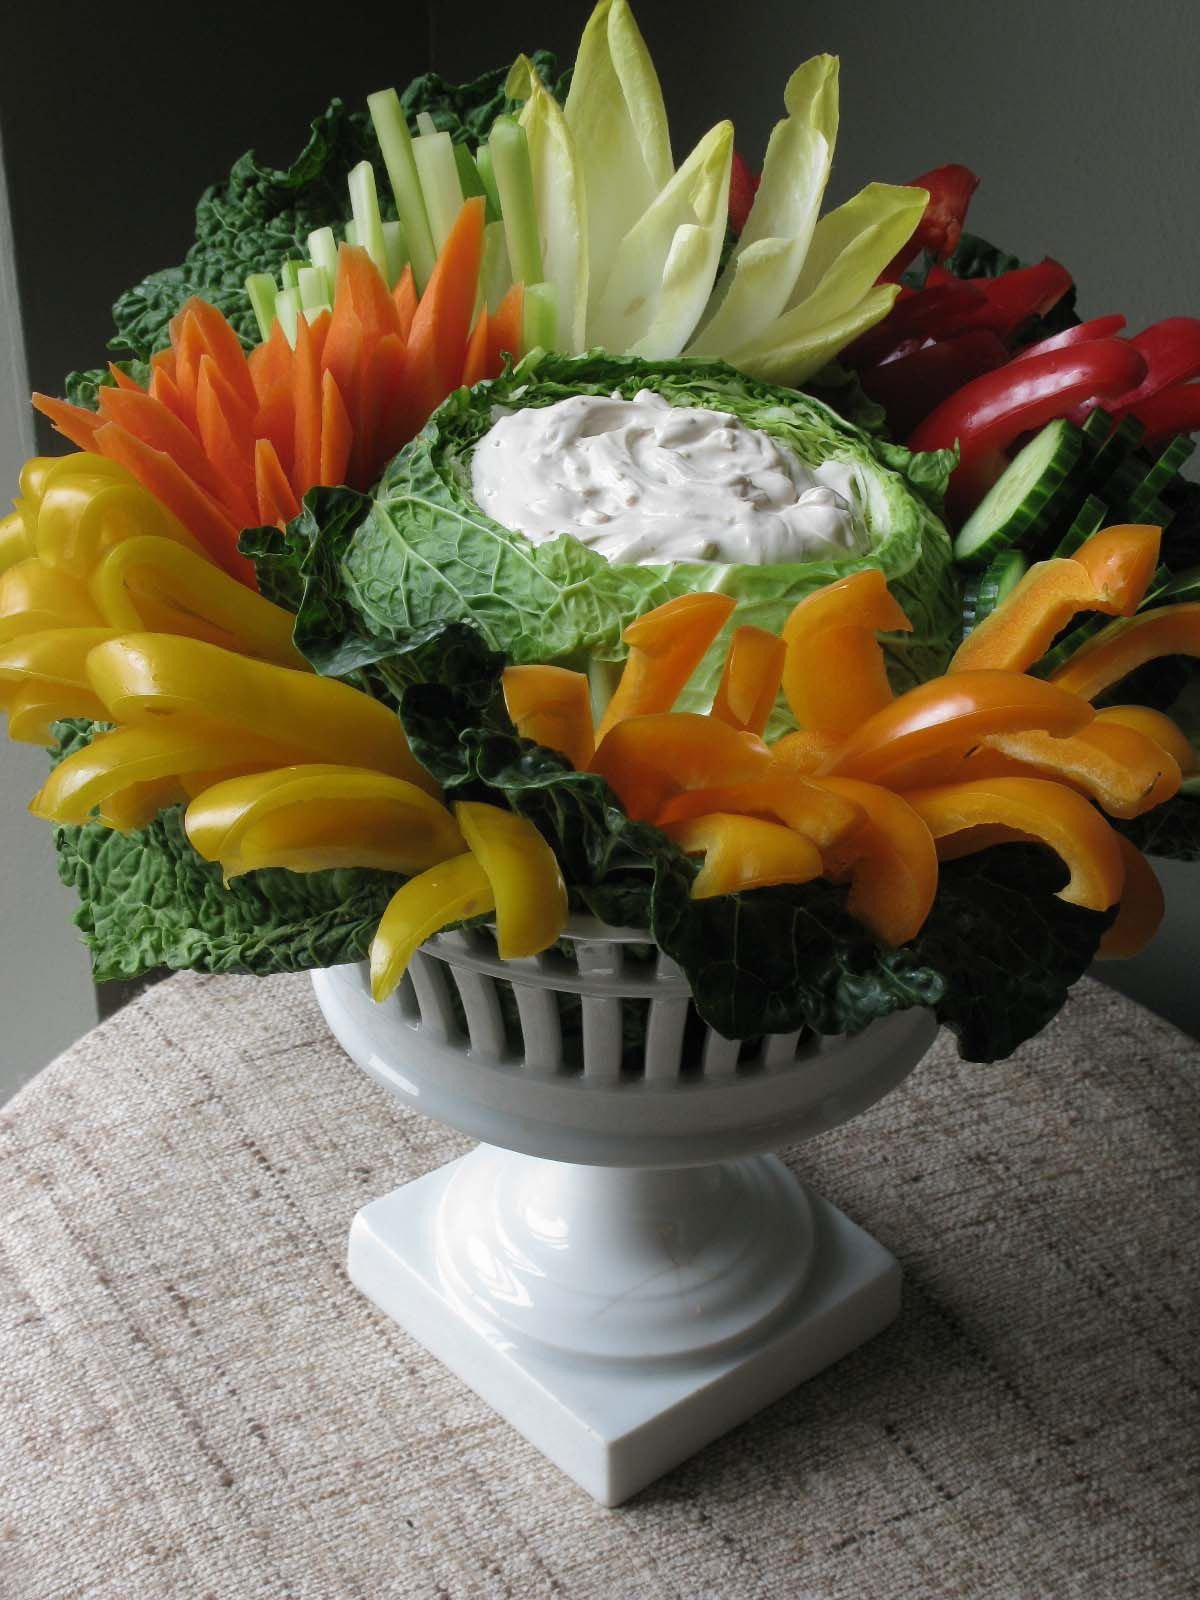 Edible Arrangements, Veggie Tray, Food Displays